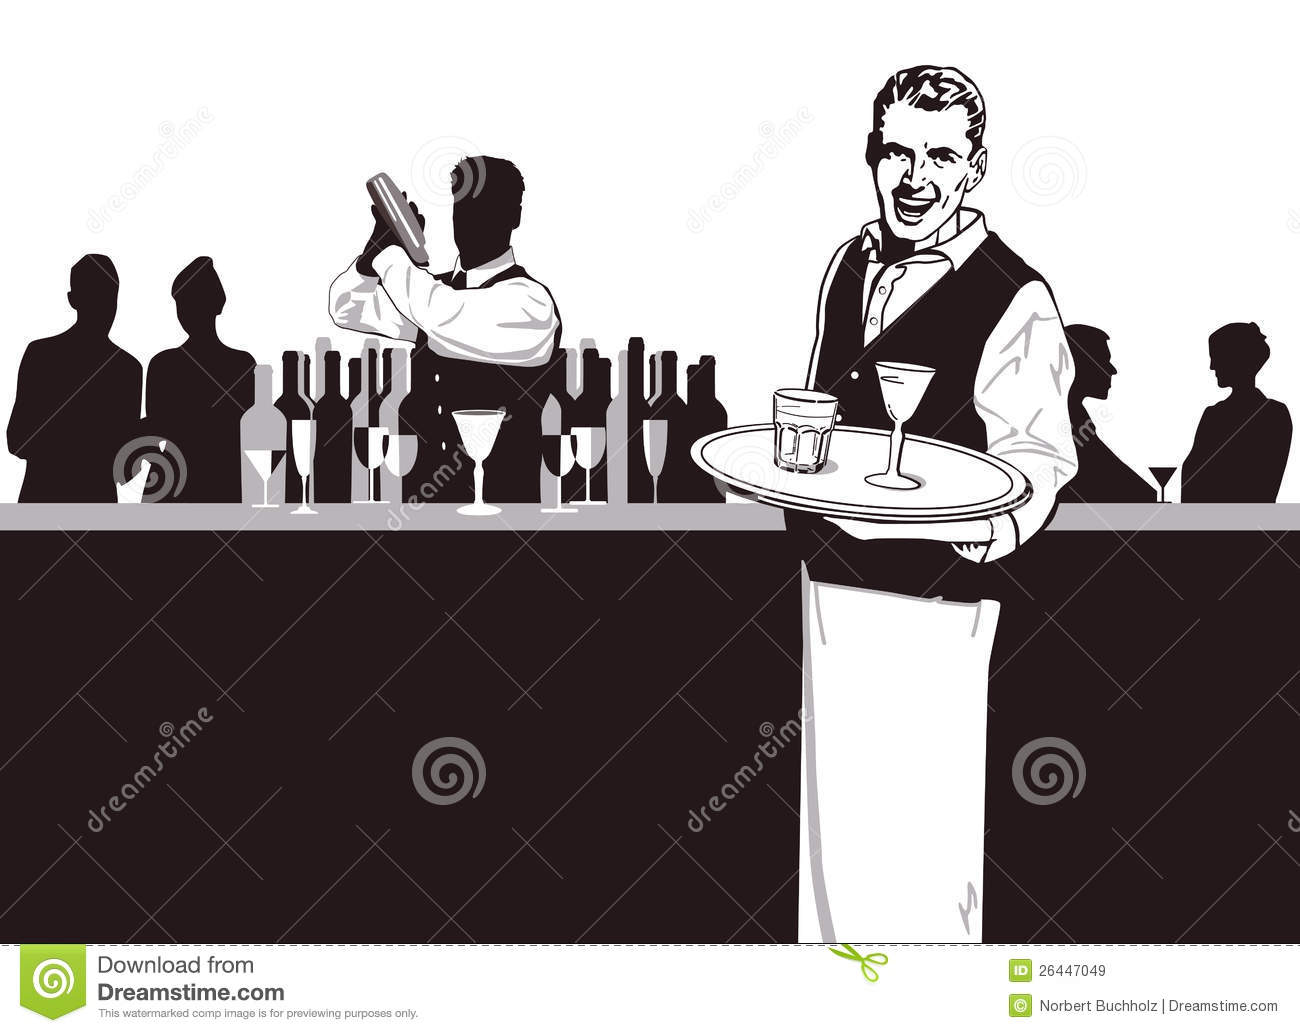 Waiter and Bartender